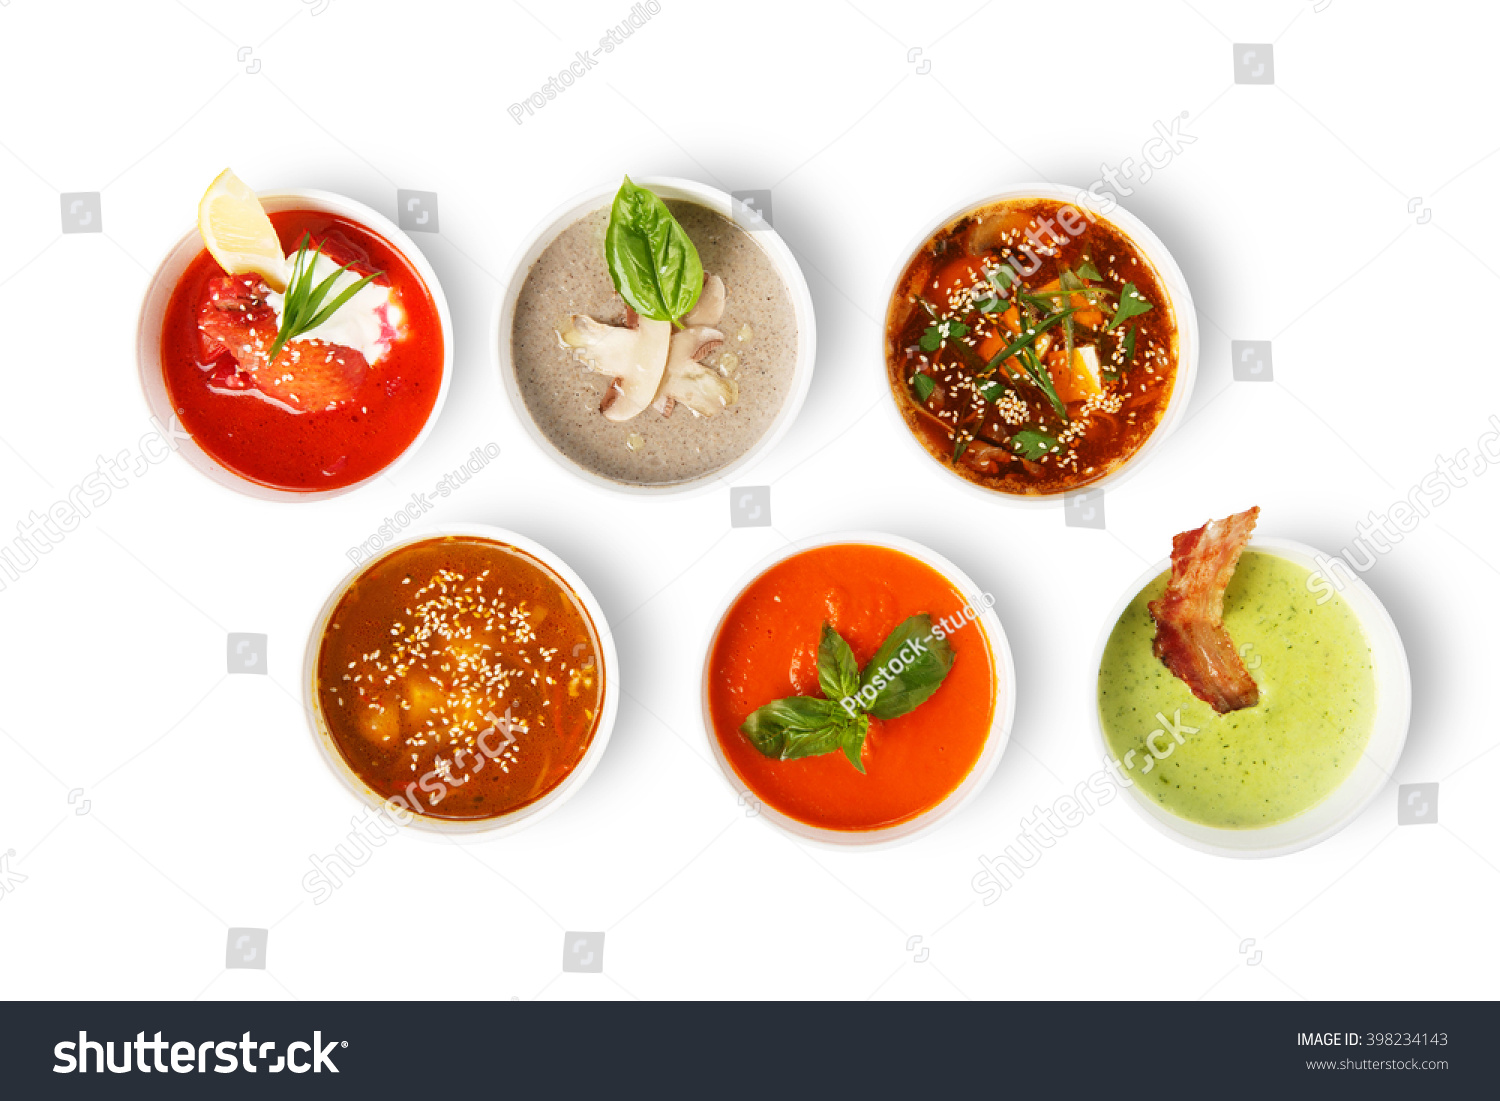 Variety Of Restaurant Hot Dishes, Healthy Food. Japanese Miso, Asian Fish Soup, Russian Borscht, English Pea Soup, Mushroom Soup, Spanish Gazpacho ...